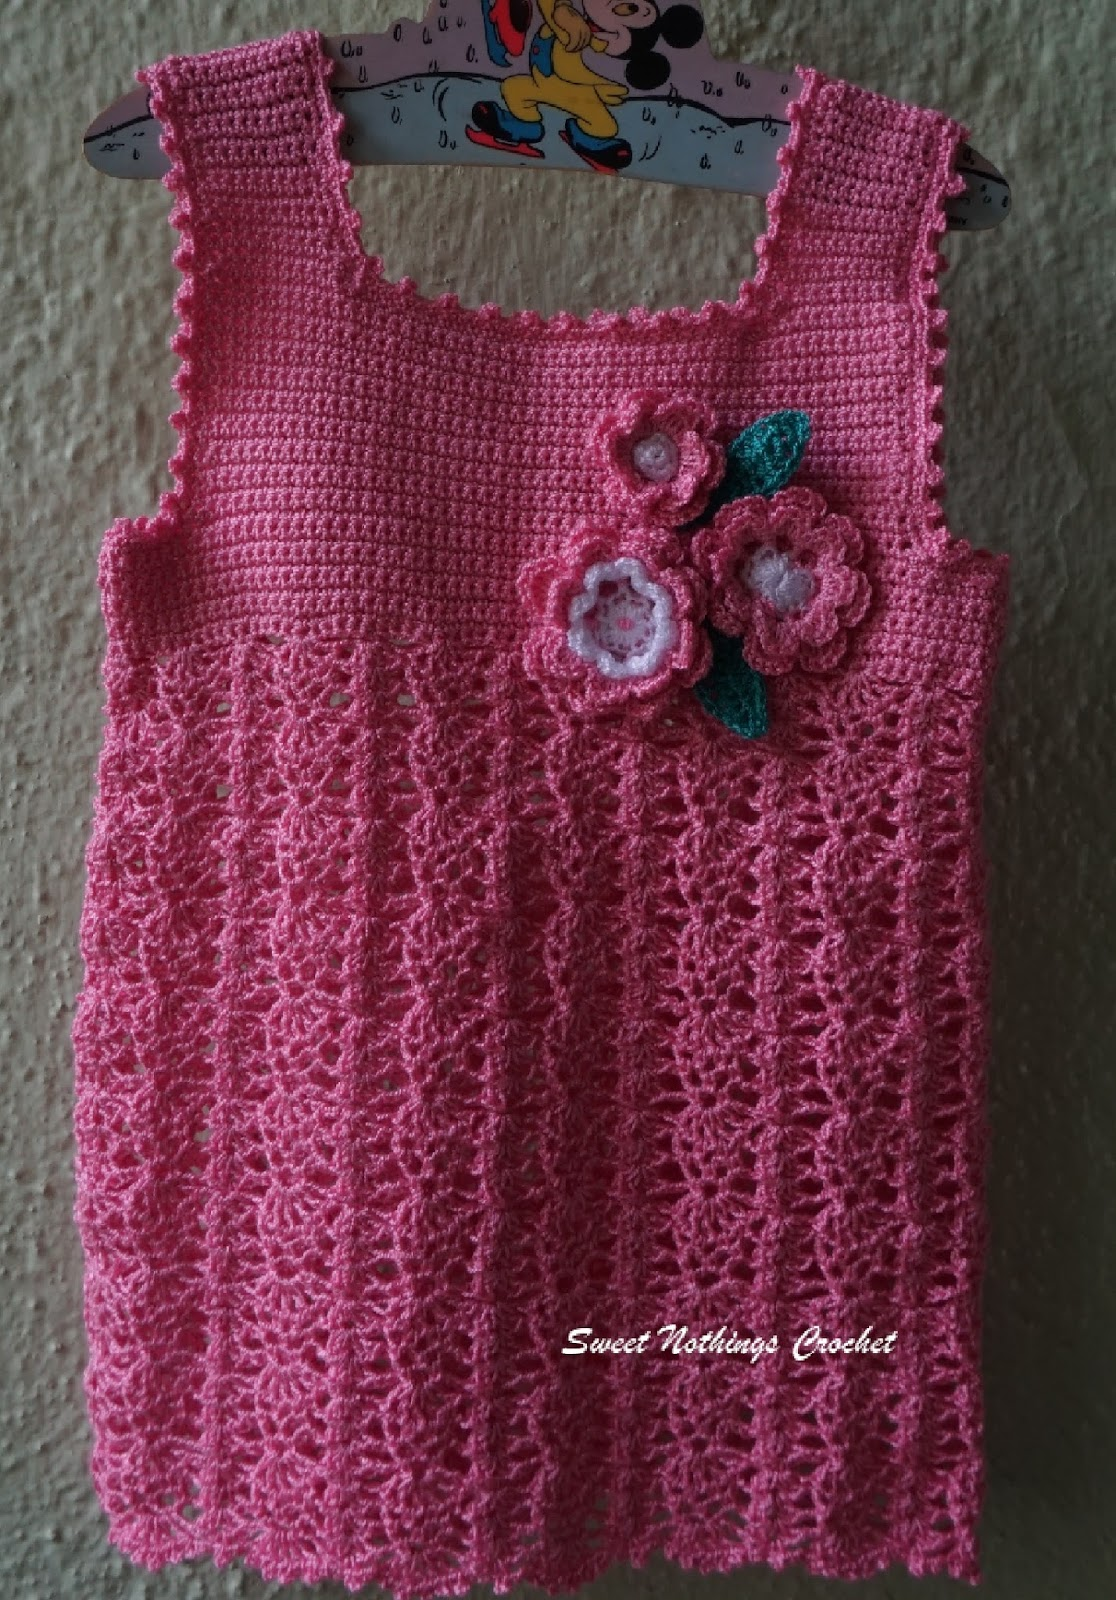 673b767f41a93 Sweet Nothings Crochet  PINEAPPLE BABY BOUTIQUE TOP